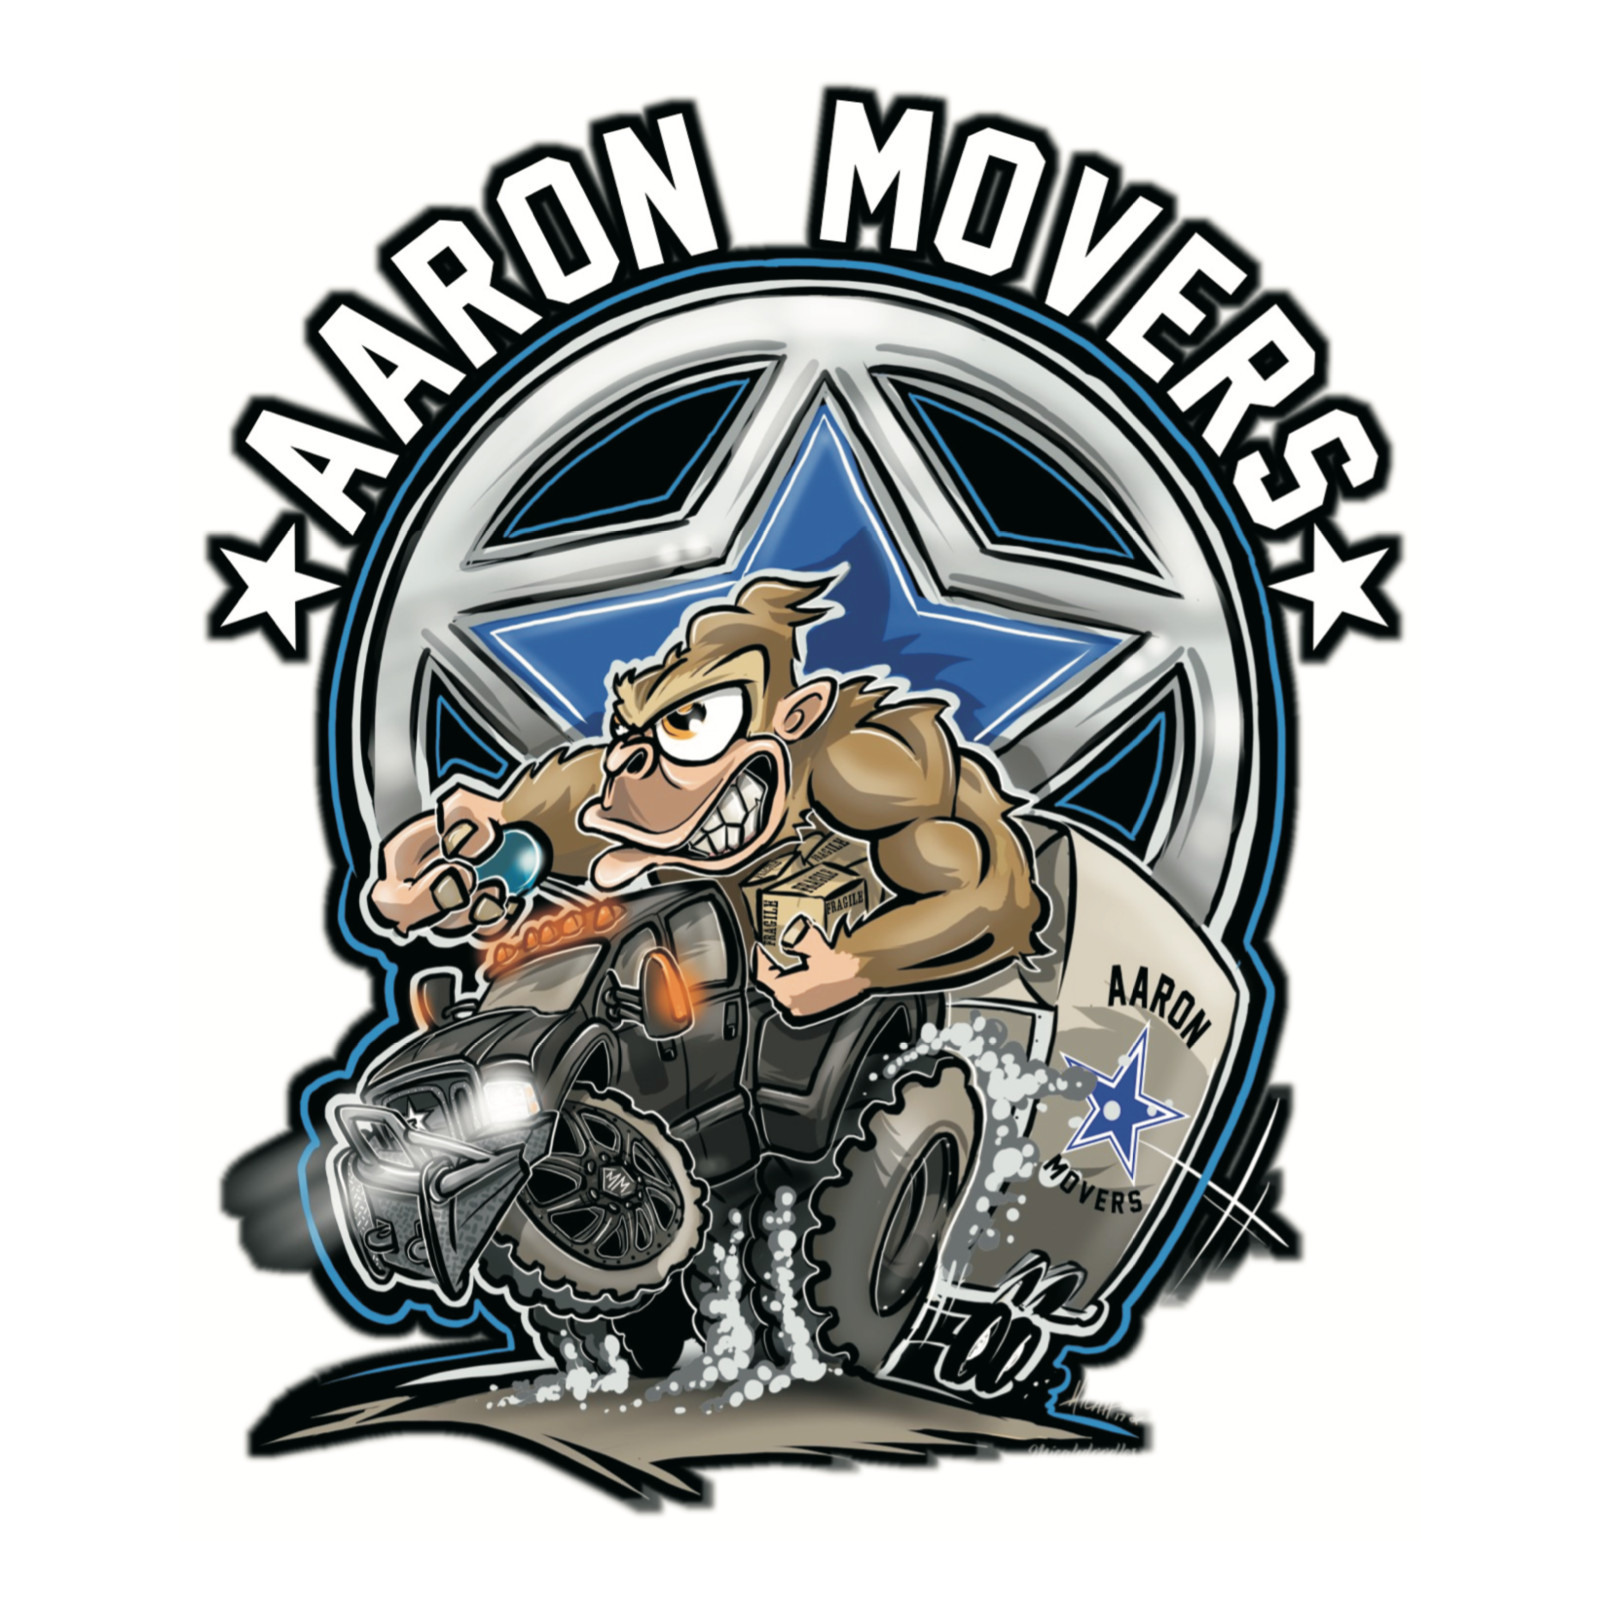 A-Aaron Movers